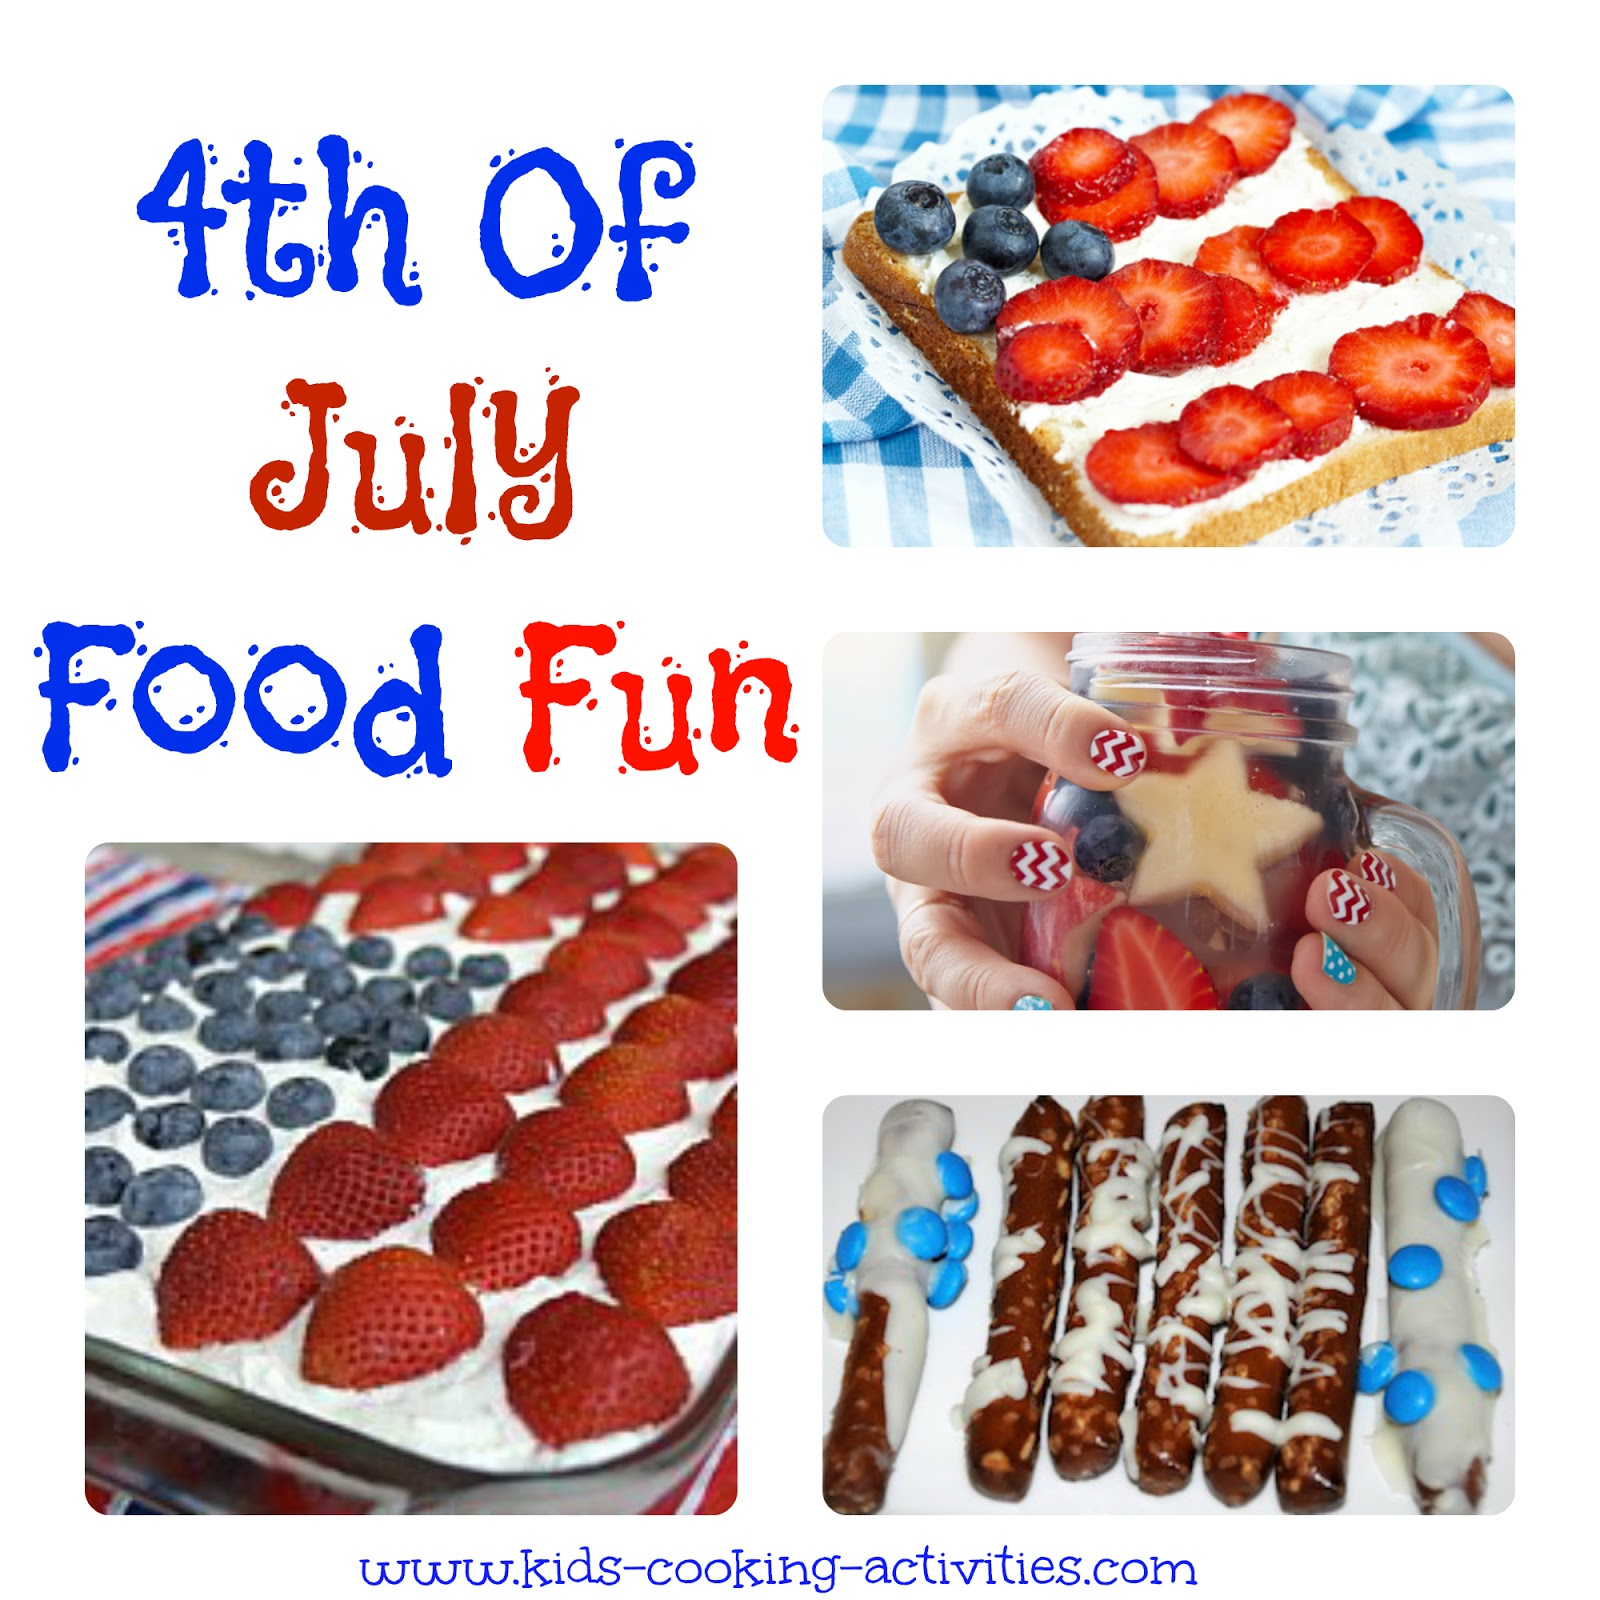 4th of july fun food ideas for July 4th food ideas